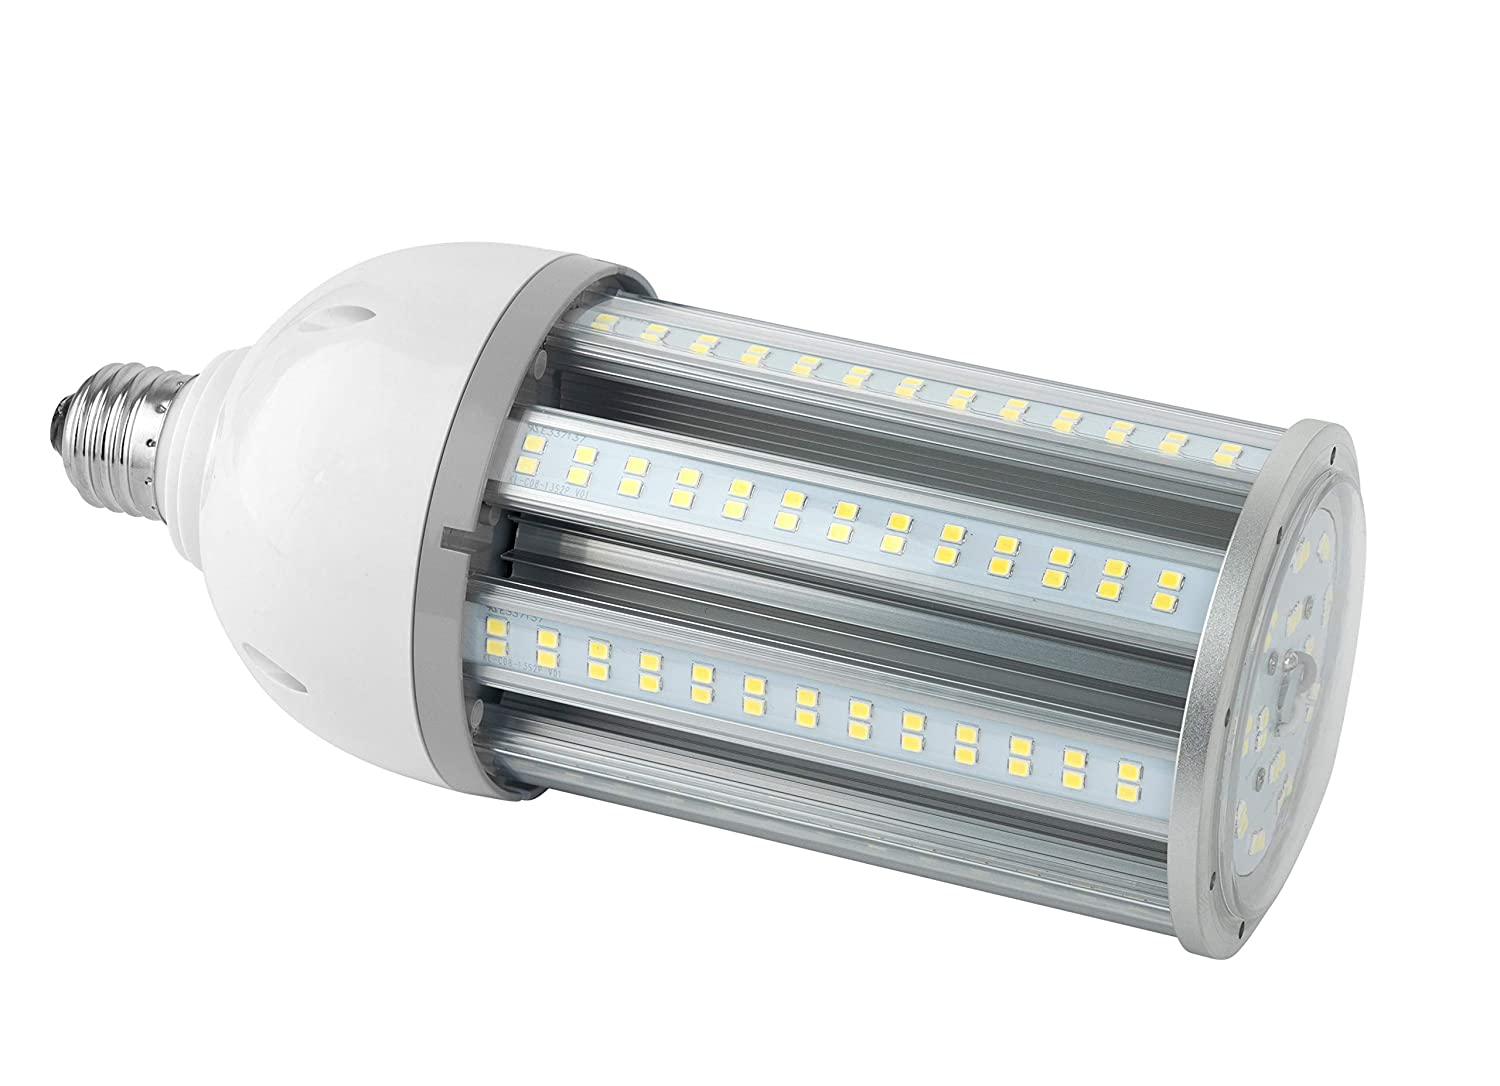 HID Replacement 54Watt Can Be Used Indoor /& Out E26 Base LED Bulb Waterproof IP65 UL Listed SleekLighting Corn Light Bulb Lasts 20,000 Hours with 6750 Lumens /& 6500 Kelvin